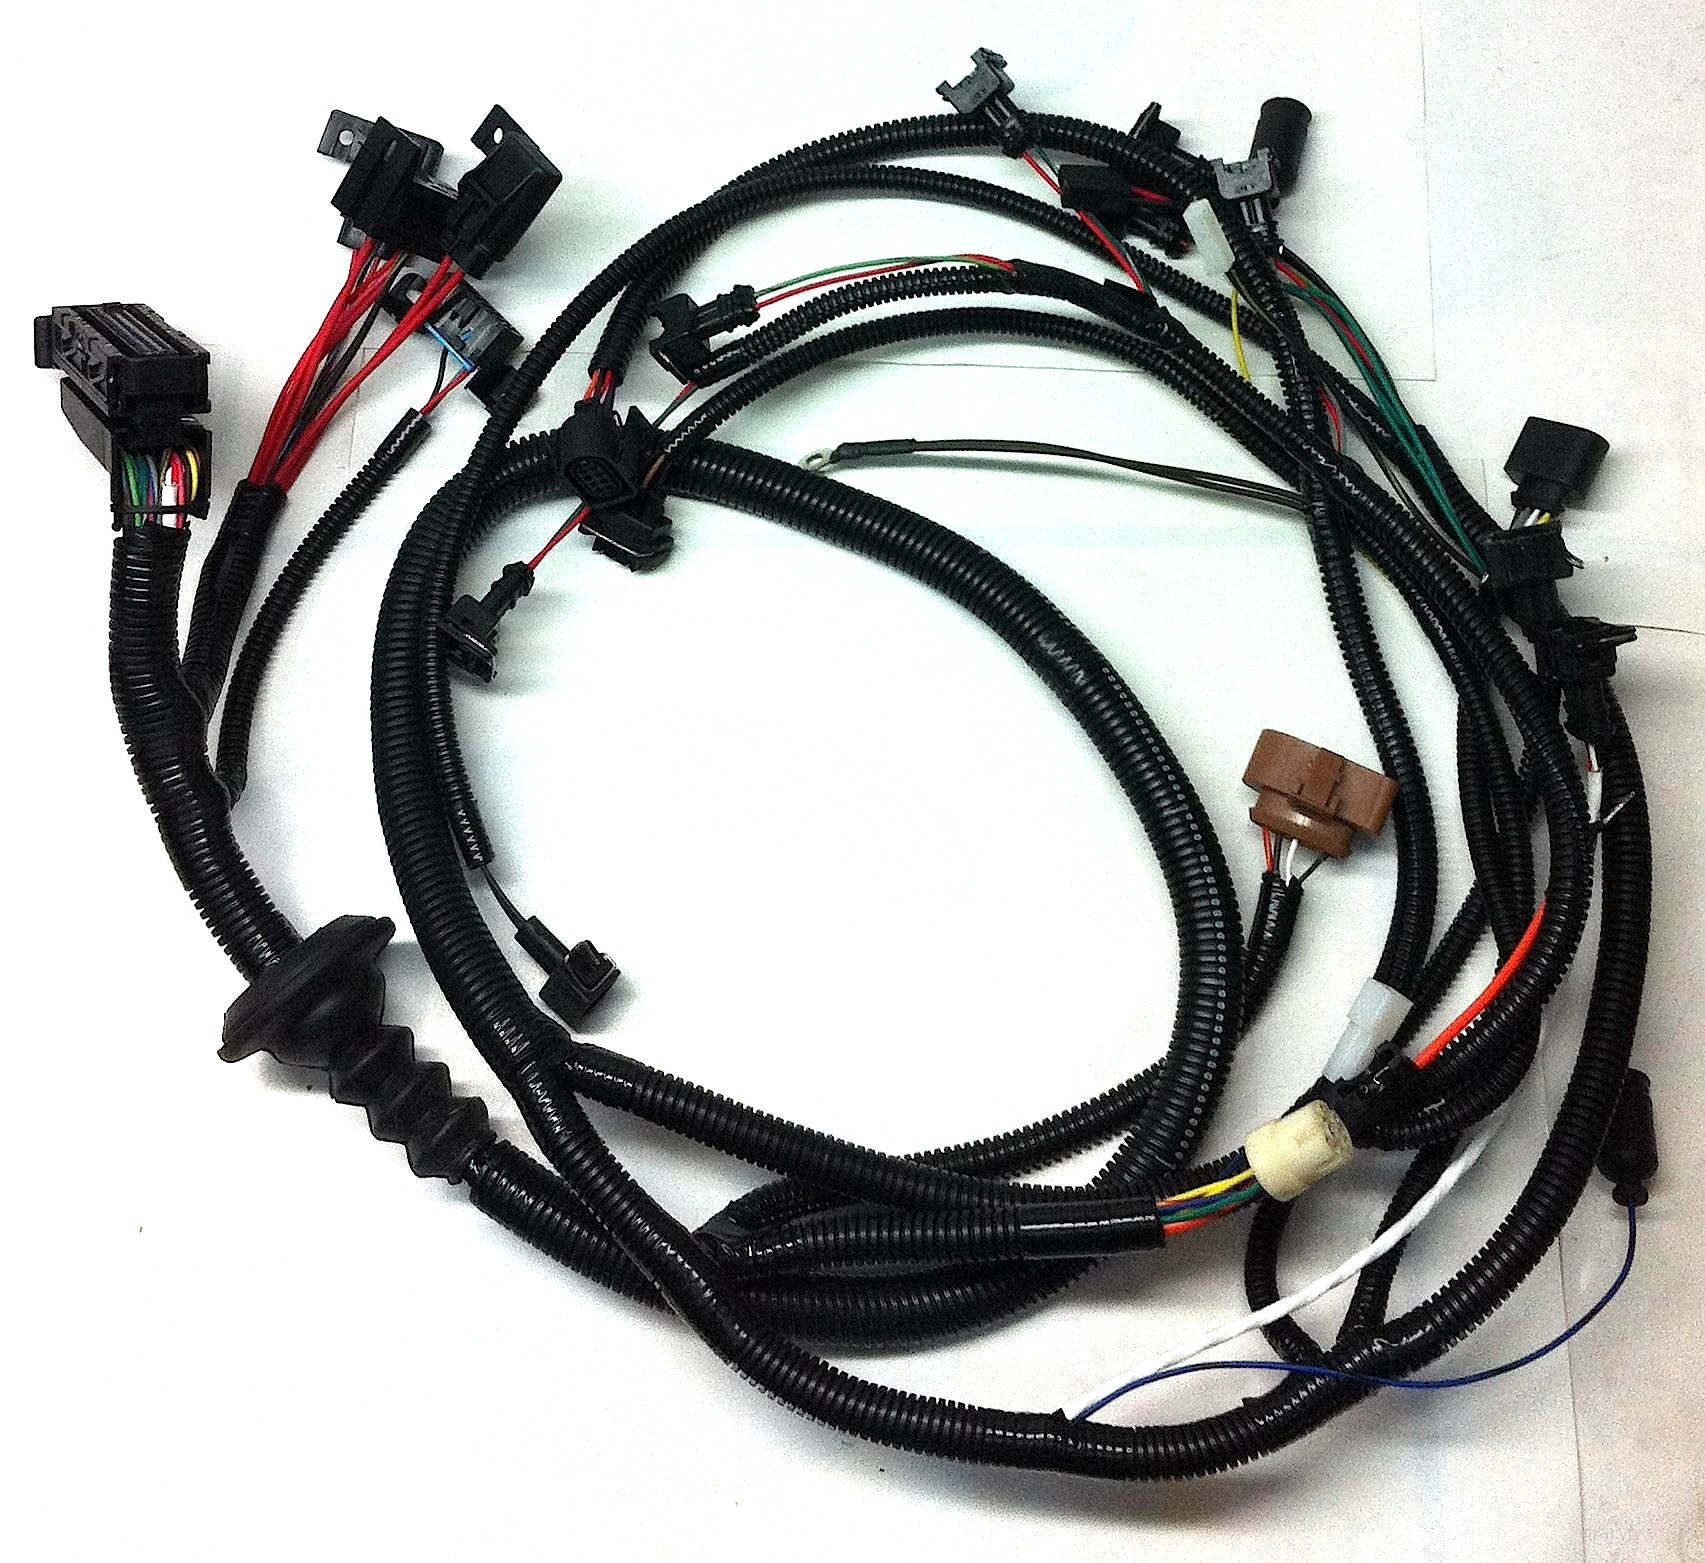 2lr tiico conversion wiring harness foreign auto supply inc rh foreignautosupply com  repair car wiring harness